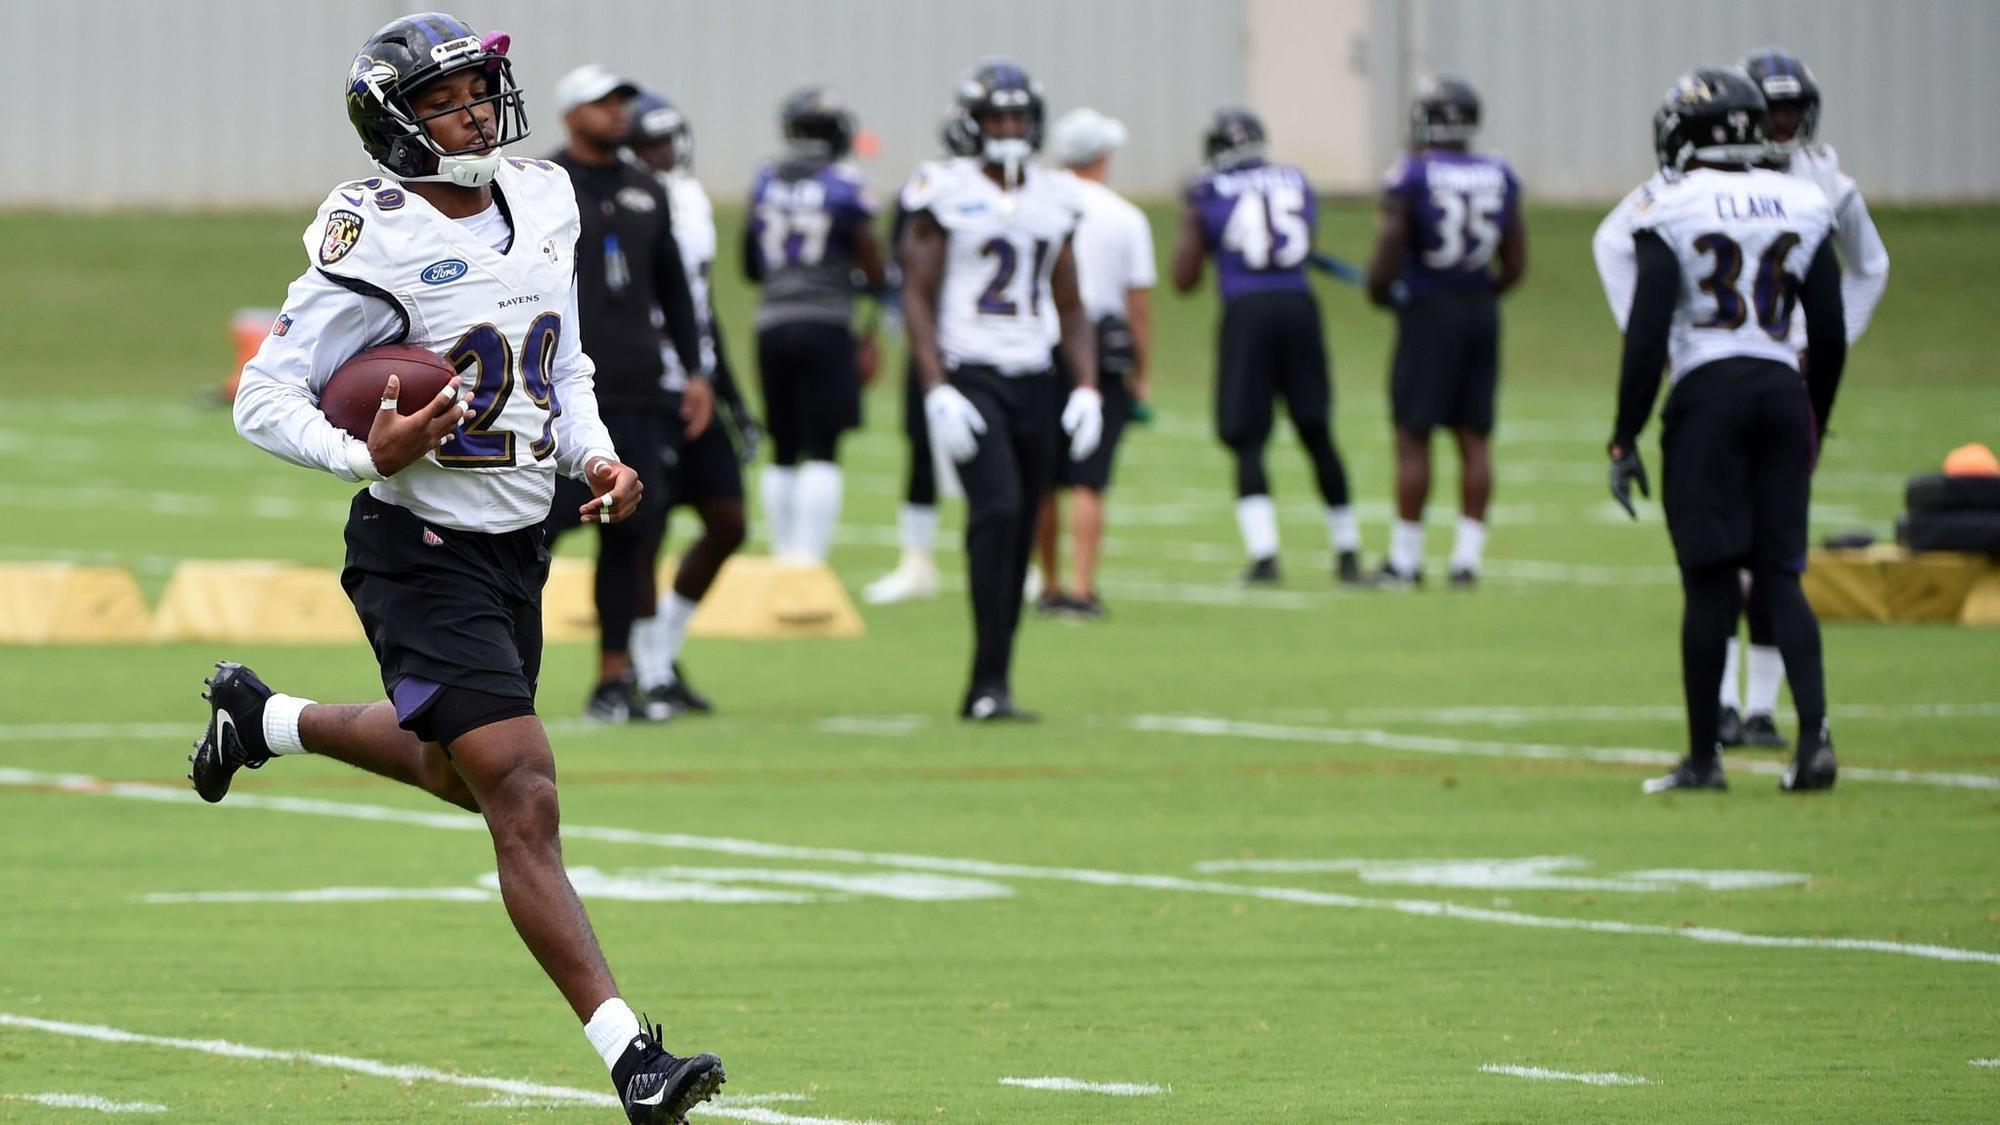 Bs-sp-ravens-notes-marlon-humphrey-accustomed-to-starting-20180907